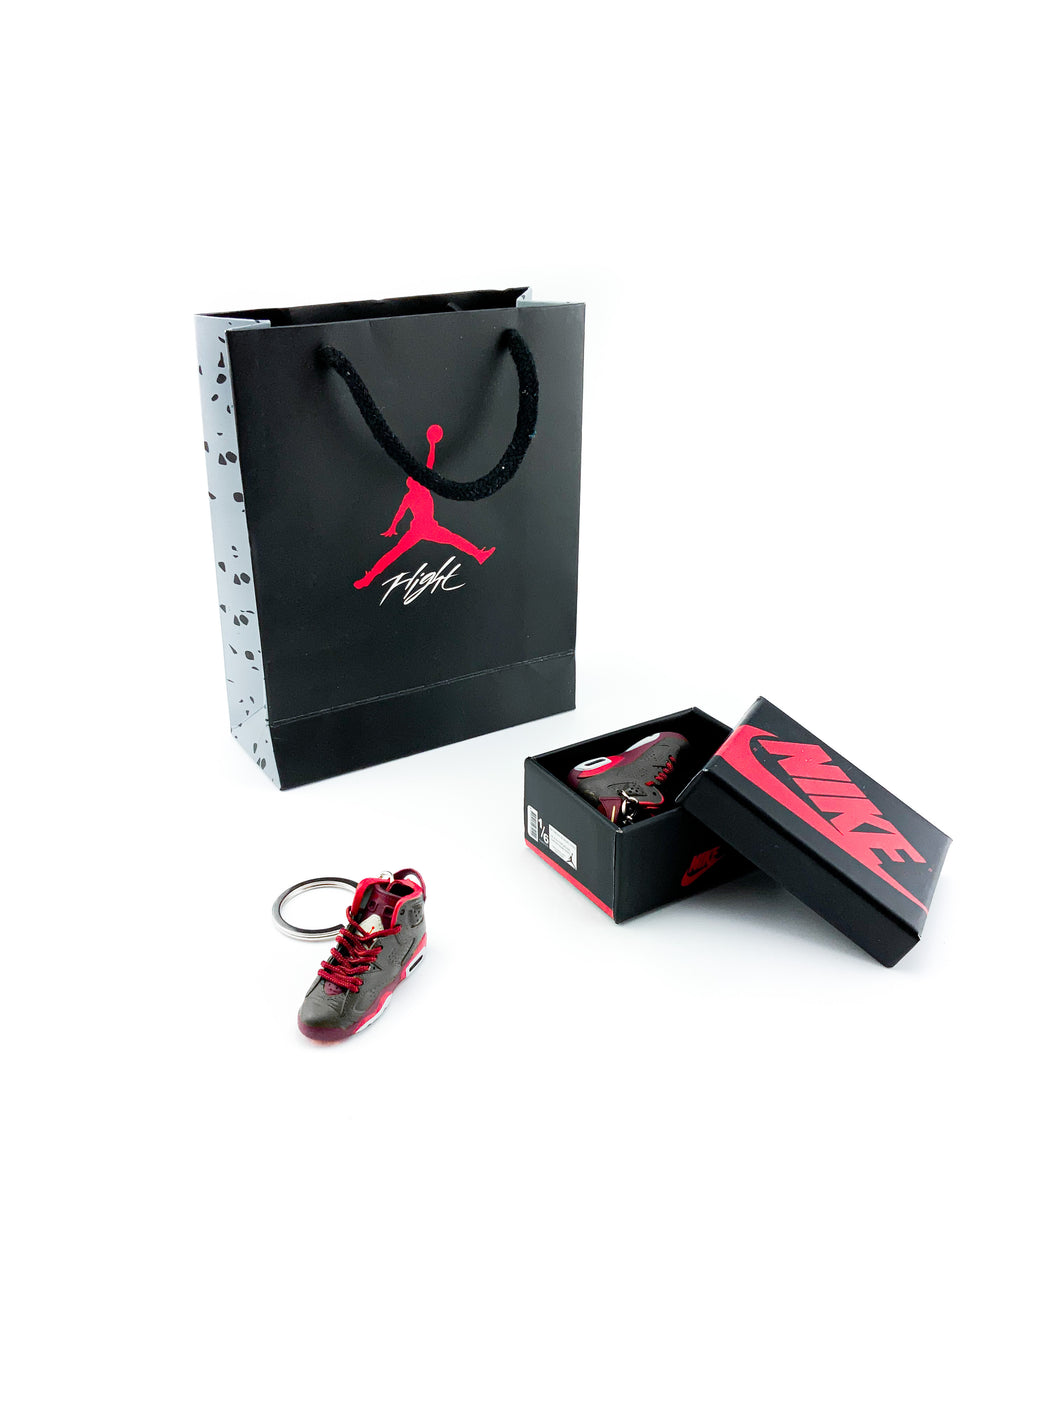 Mini Air Jordan 6 (VI) Retro 'Cigar' Replica Keychain